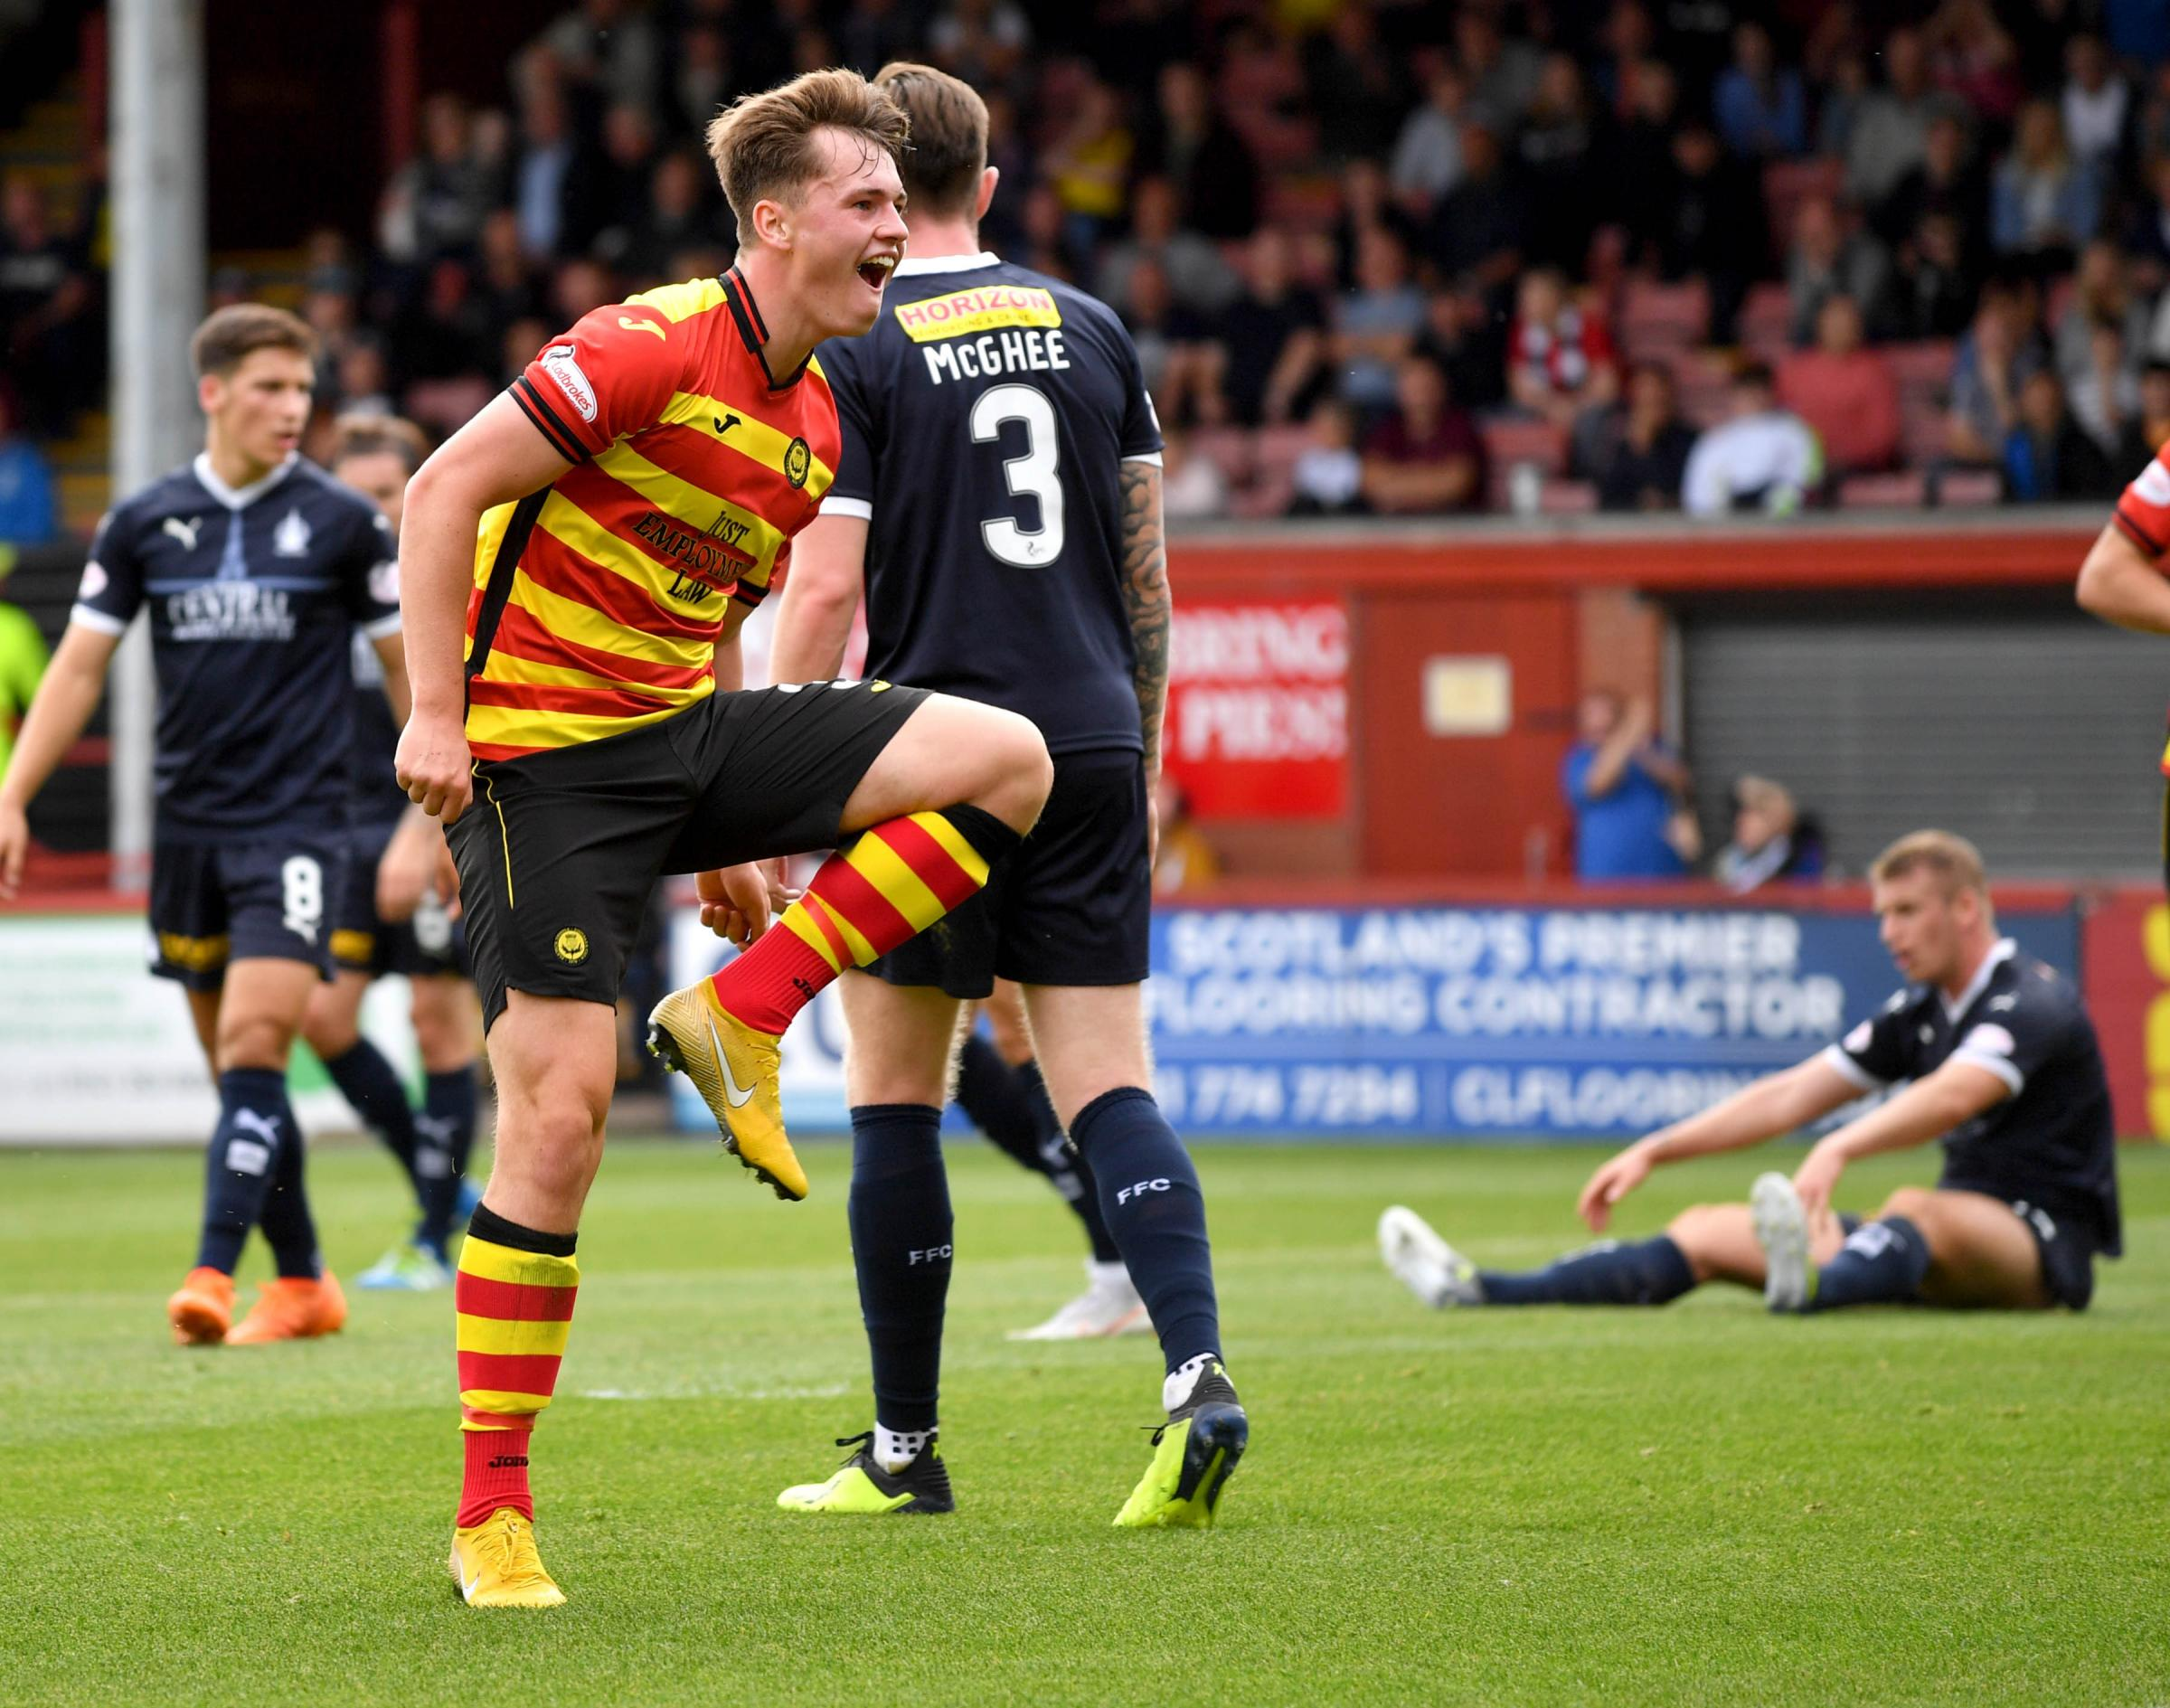 11/08/18 - LADBROKES CHAMPIONSHIP. PARTICK THISTLE V FALKIRK. THE ENERGY CHECK STADIUM AT FIRHILL - GLASGOW. Partick Thistles James Penrice celebrates scoring his sides first goal making it 1-0.